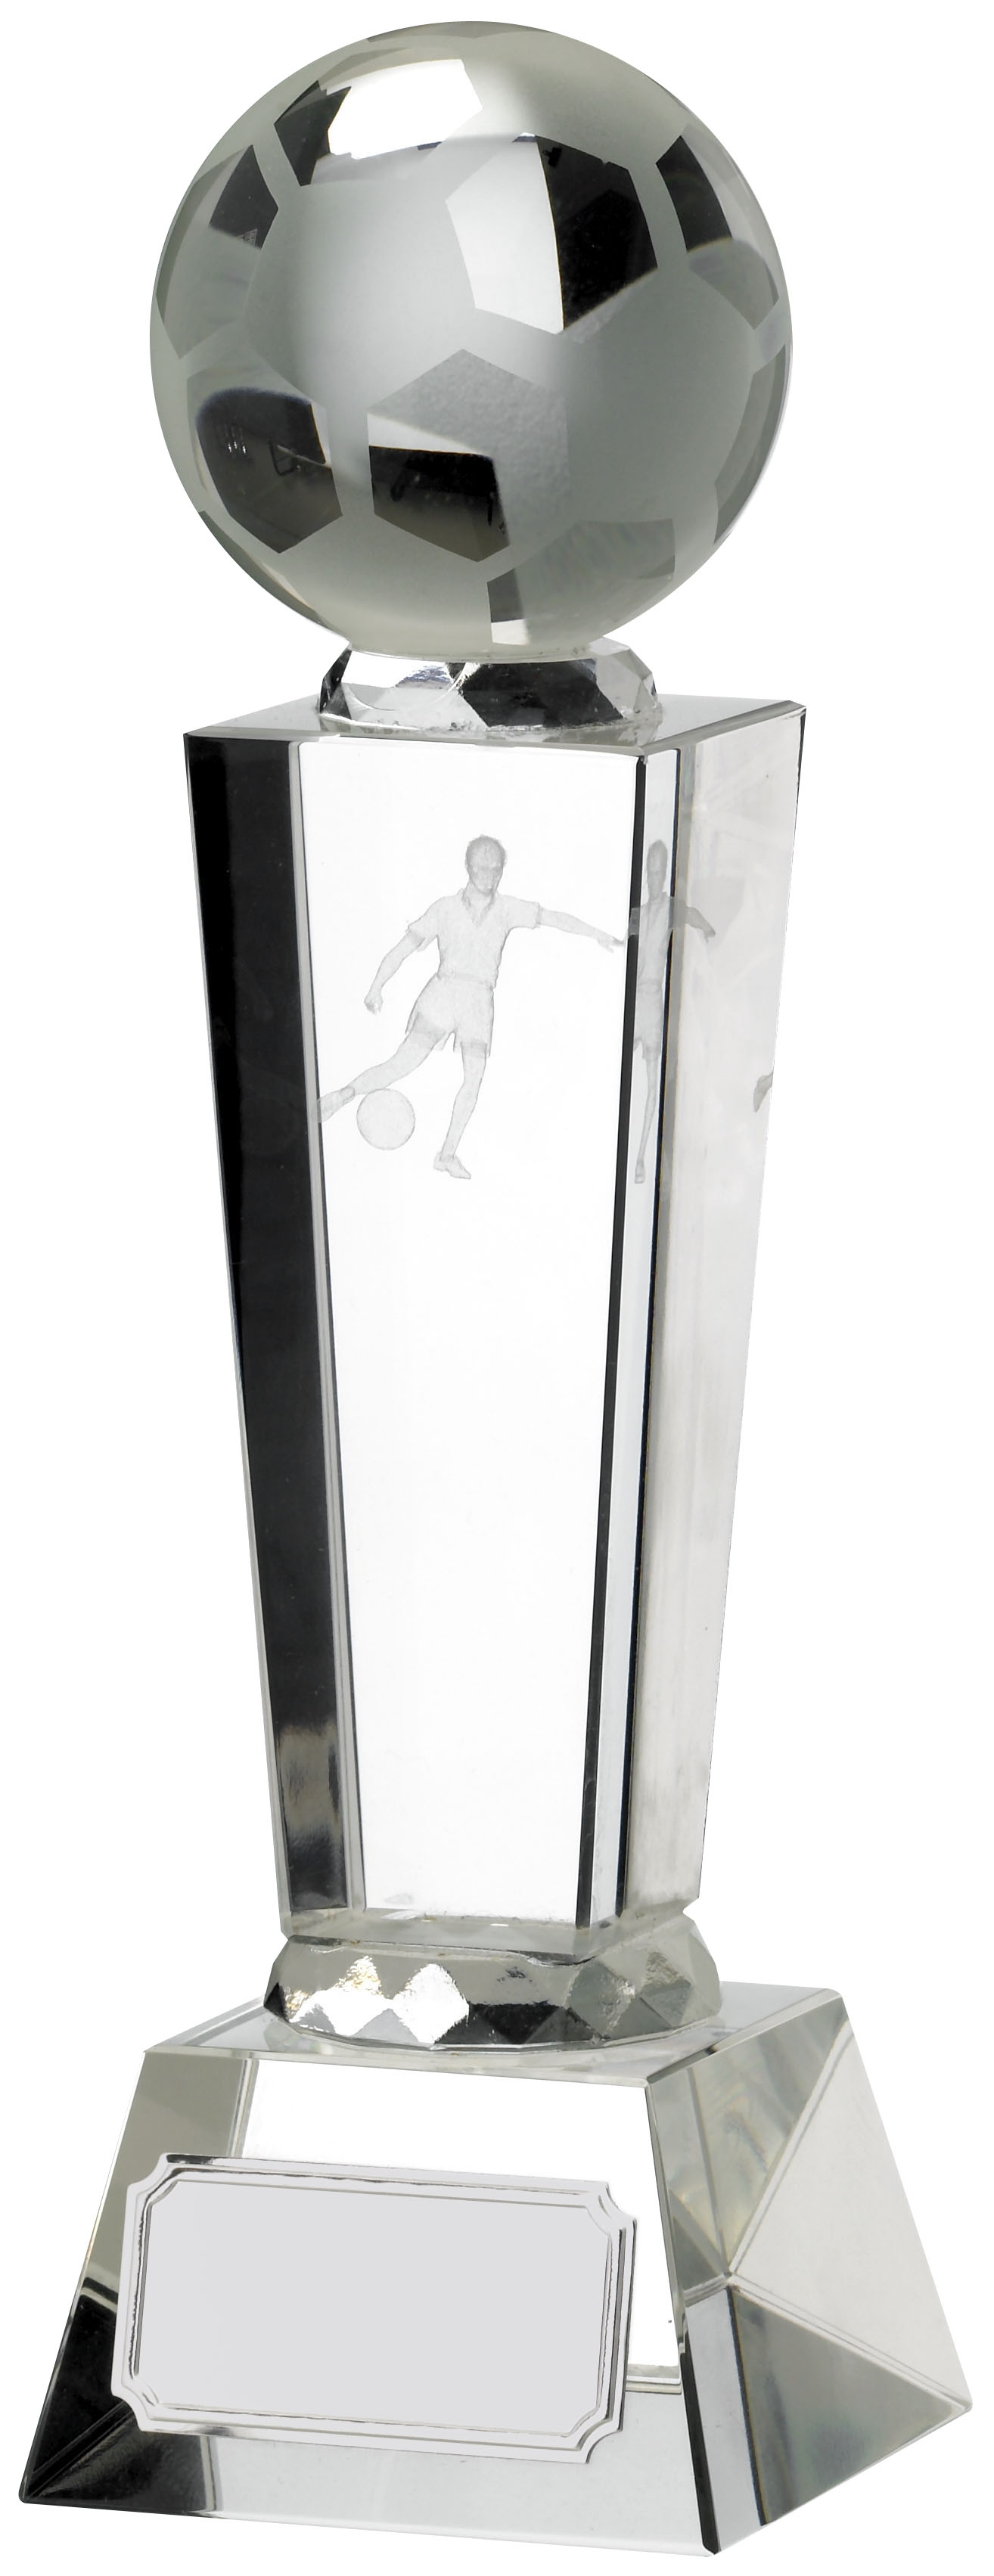 8.5inch FOOTBALL GLASS WITH BALL